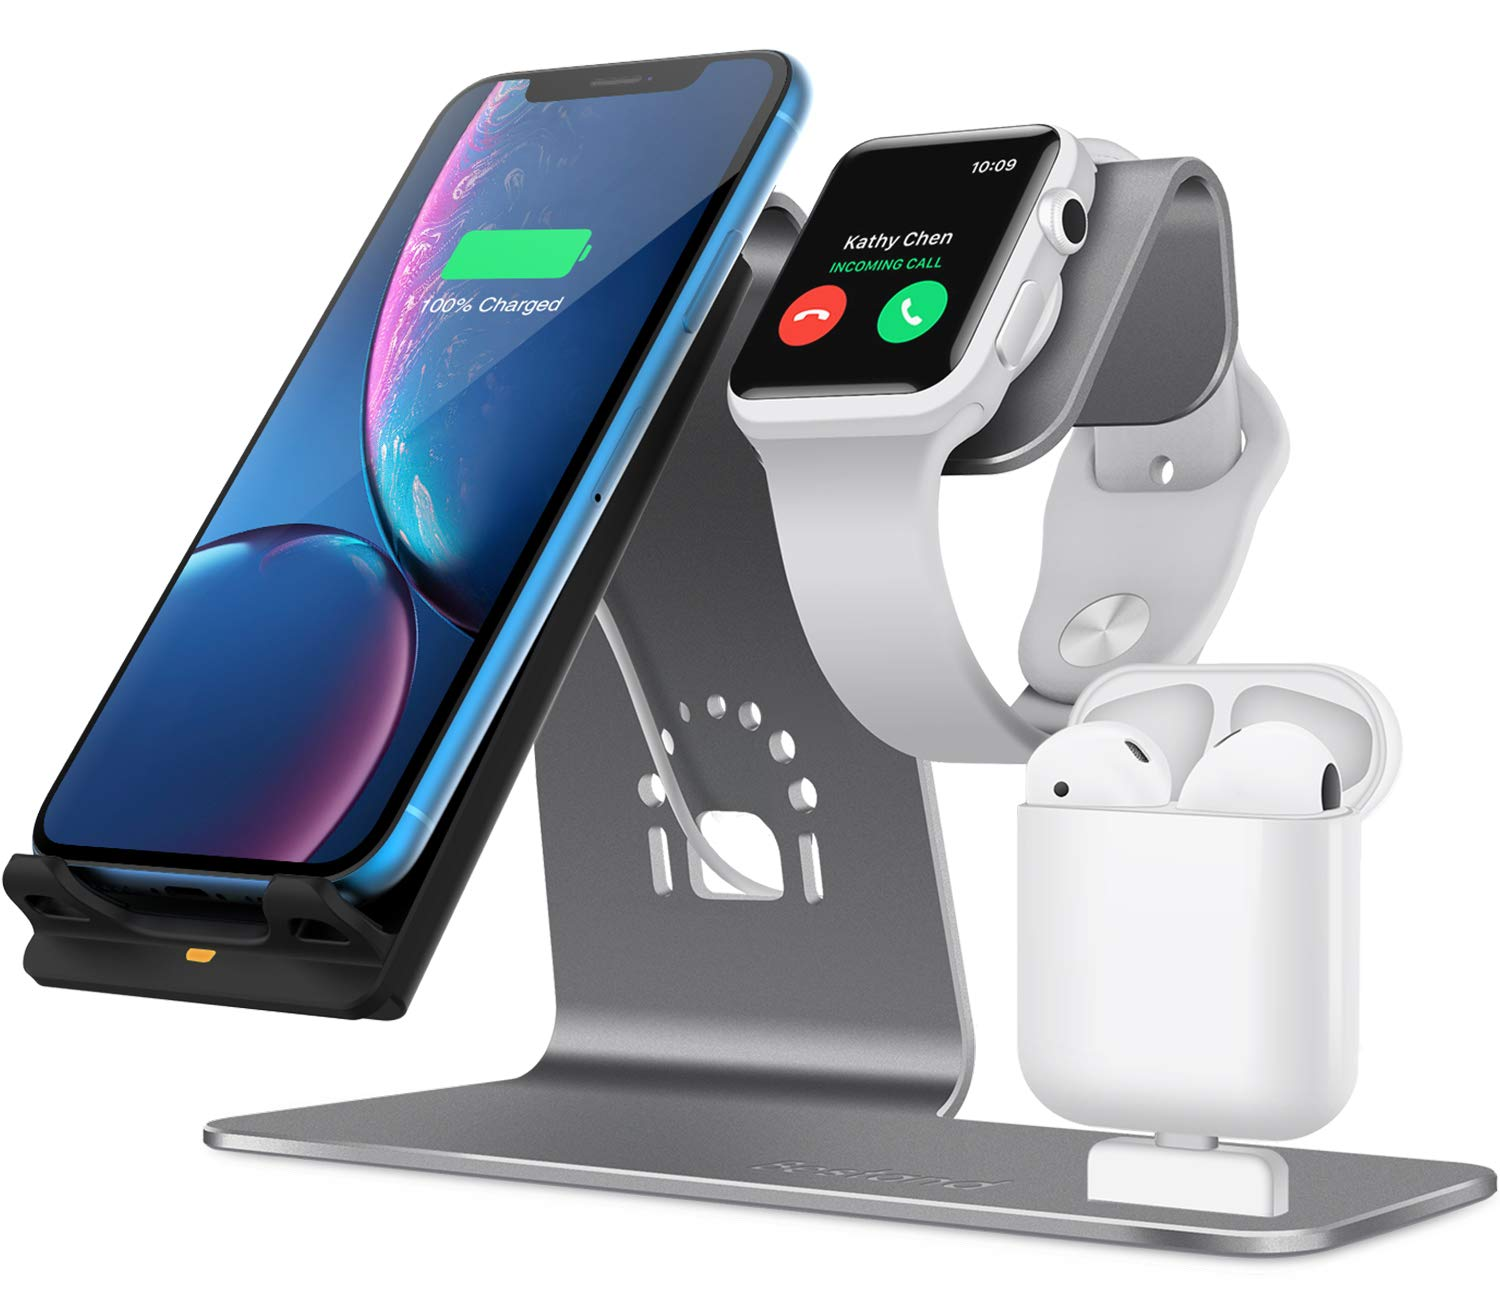 Bestand 3 in 1 Aluminum Stand for Apple iWatch, Charging Station for Airpods, Qi Fast Wireless Charger Dock for Apple iWatch/iPhone X/8 Plus/8, Samsung S8, Grey by Bestand